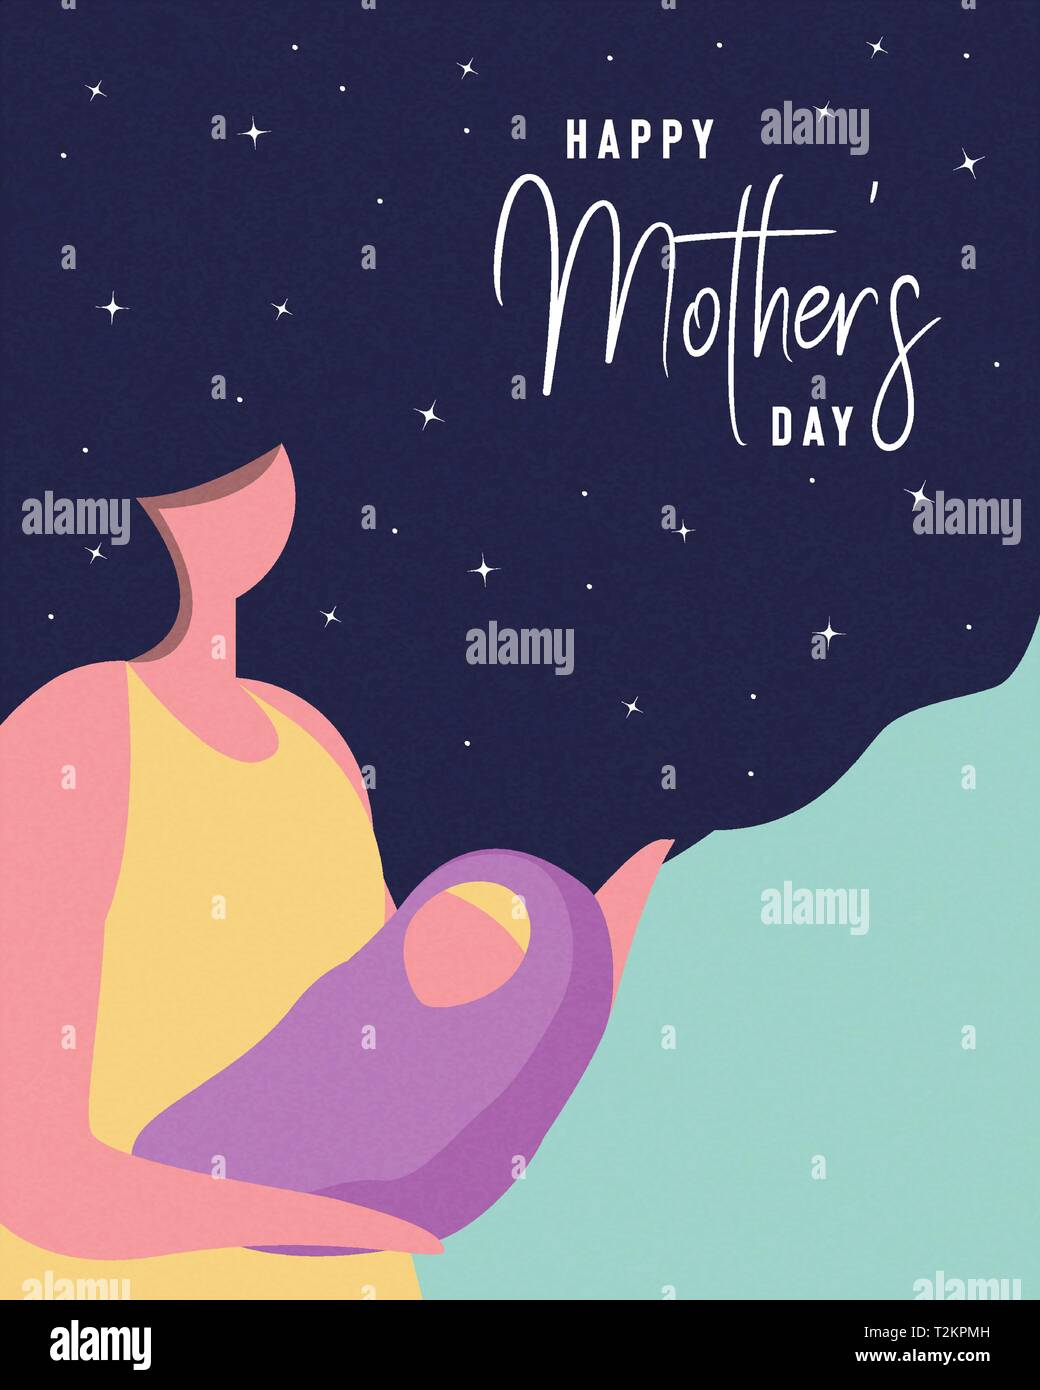 Happy Mothers Day card illustration. Woman with long hair holding baby for motherhood concept or mother love. - Stock Image